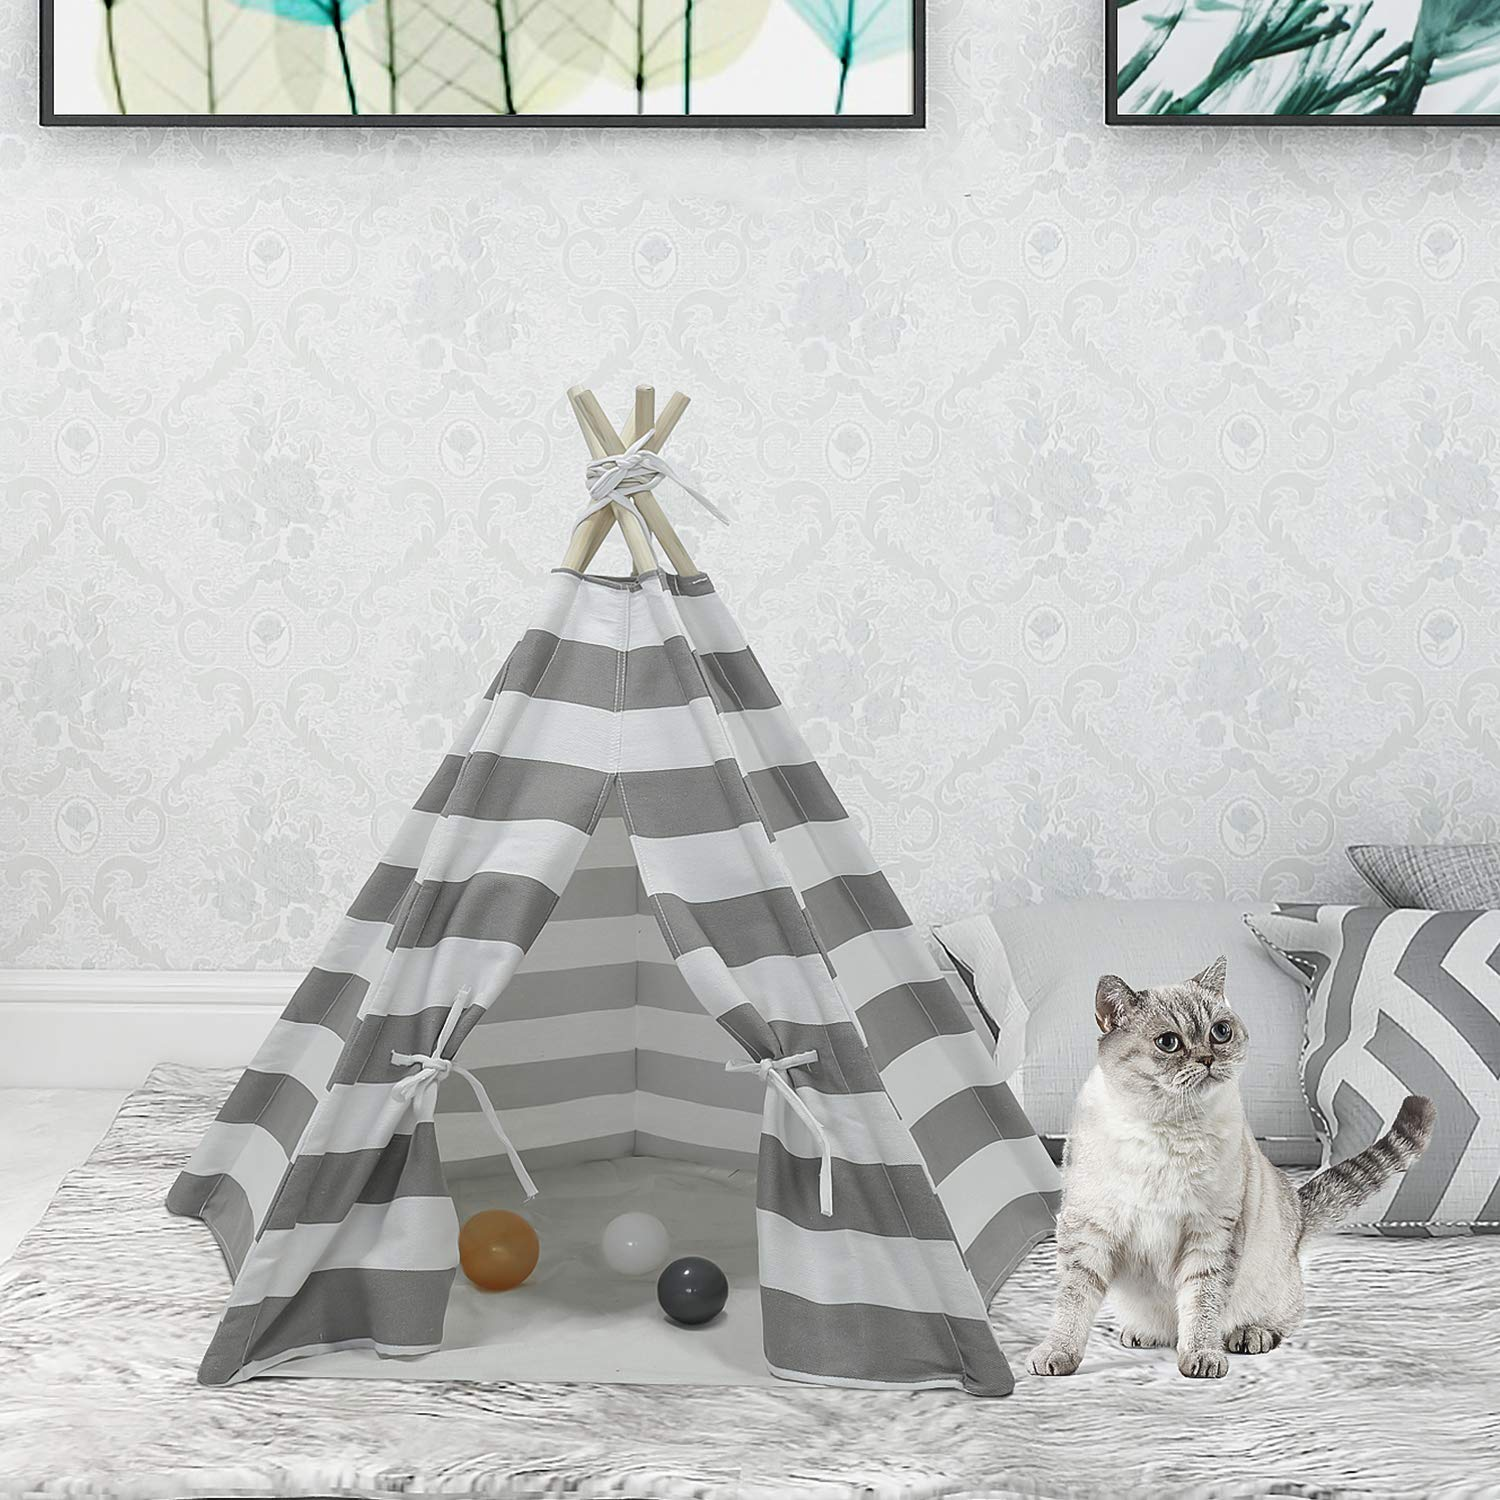 UKadou Pet Teepee Dog & Cat Bed Dog Tents Pet Houses with Mat, Grey & White Stripe Pet Teepee for Dogs